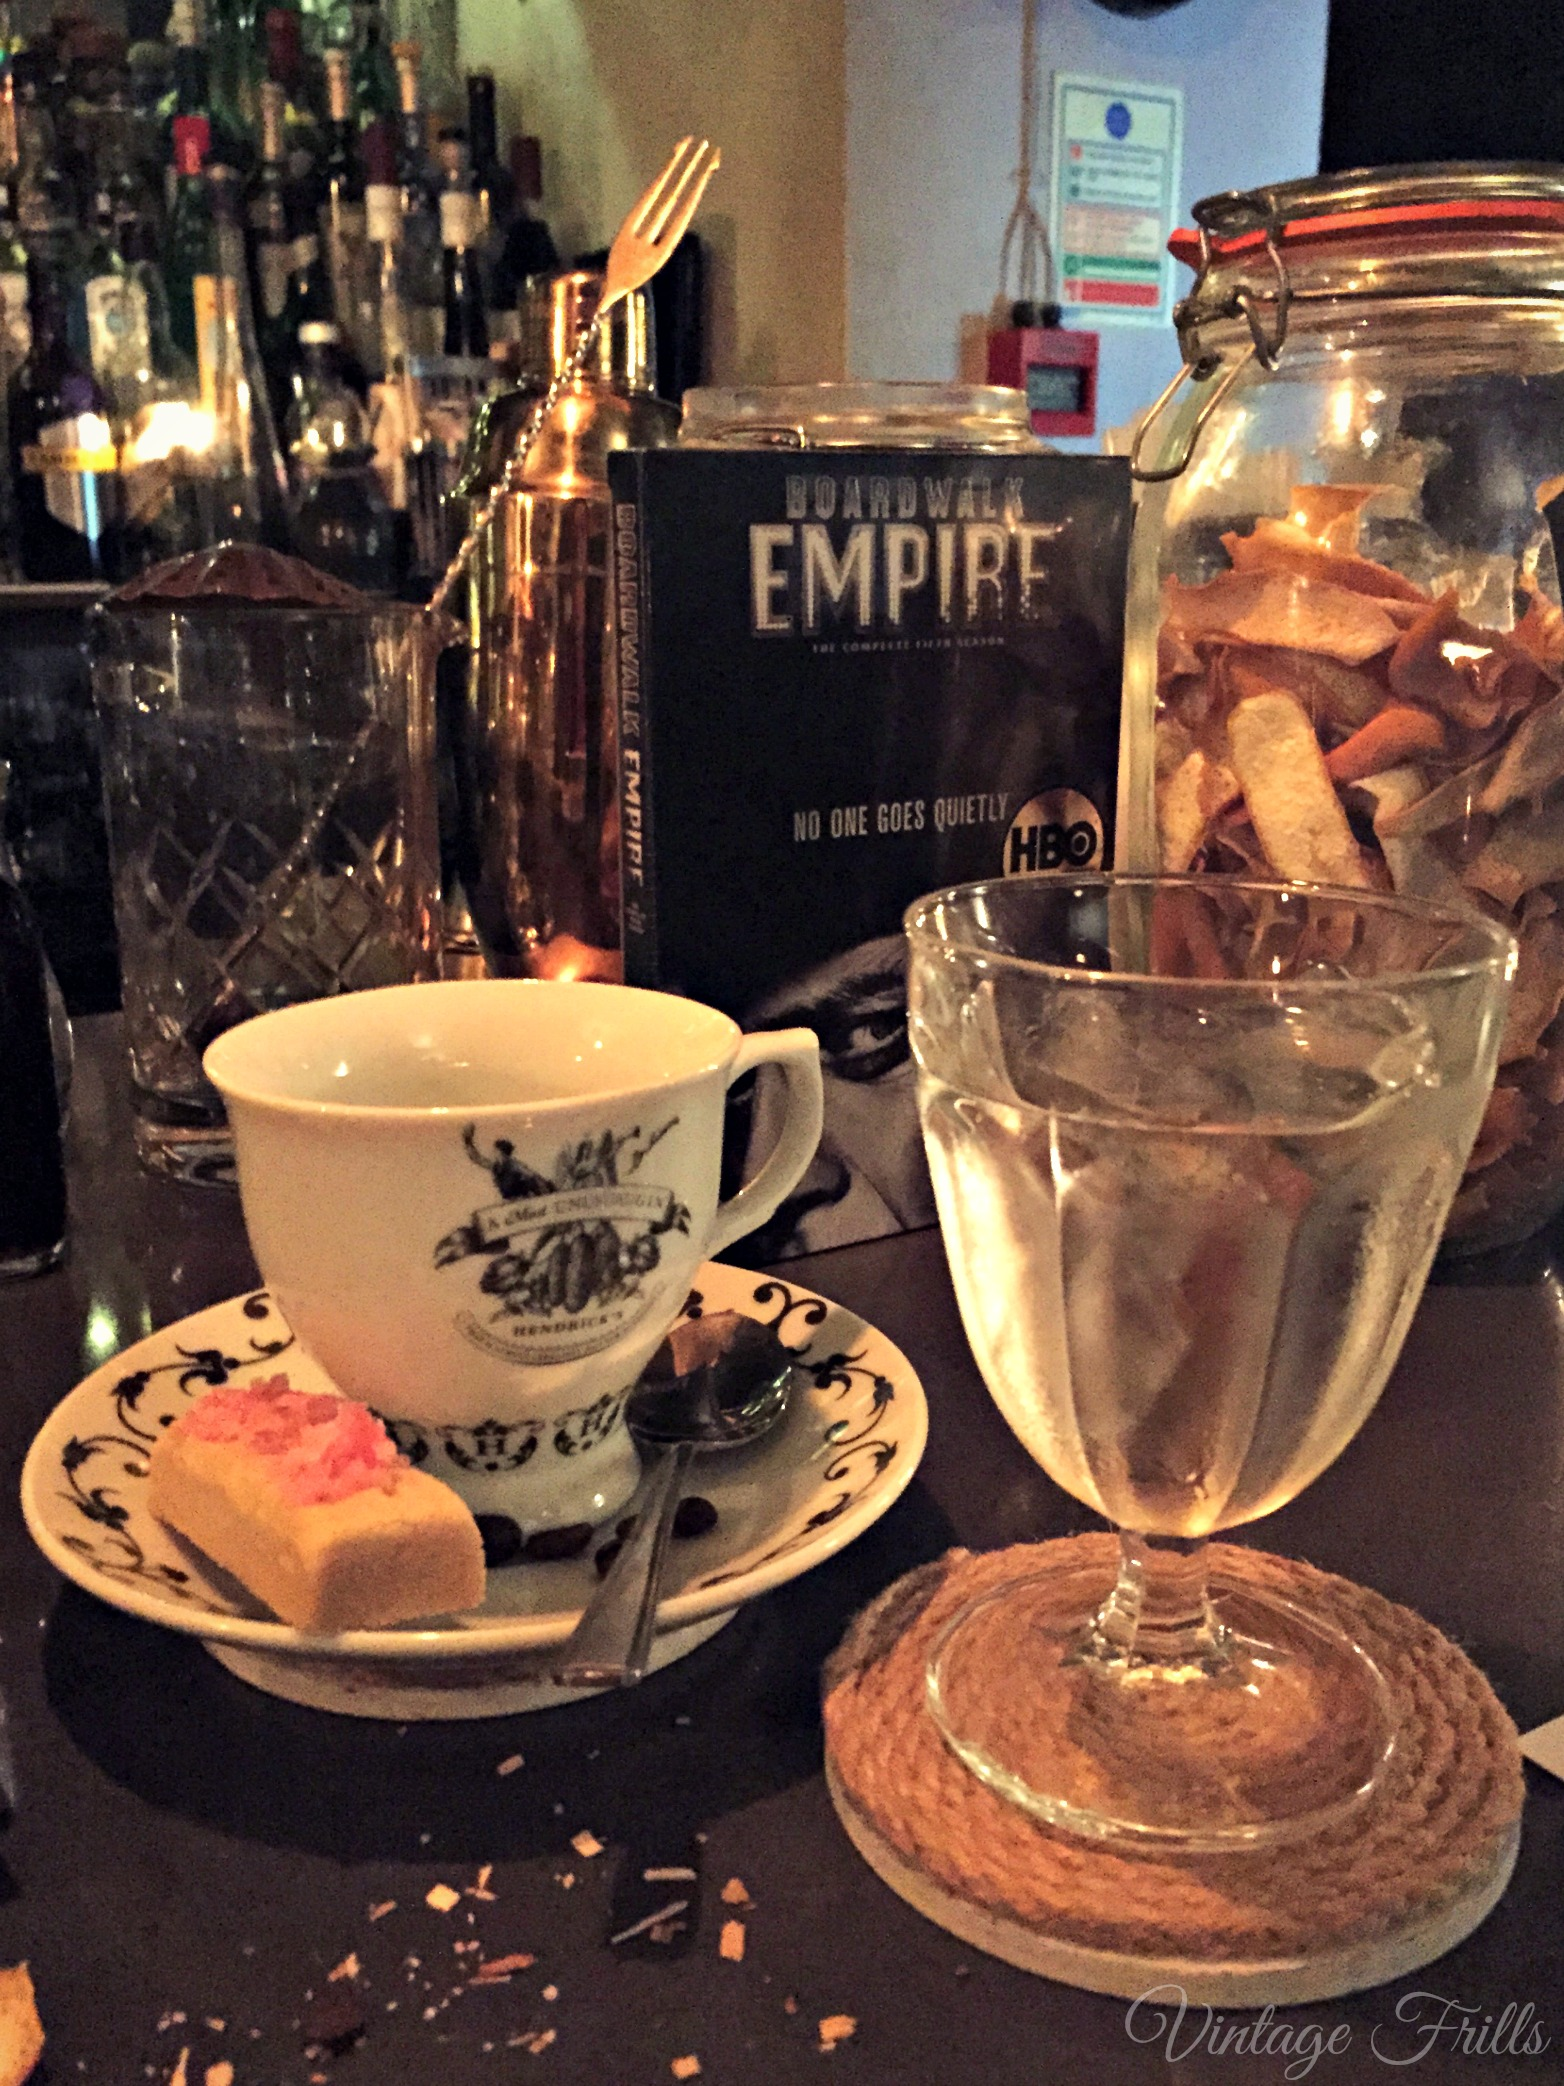 London Speakeasy Mocktails with Boardwalk Empire